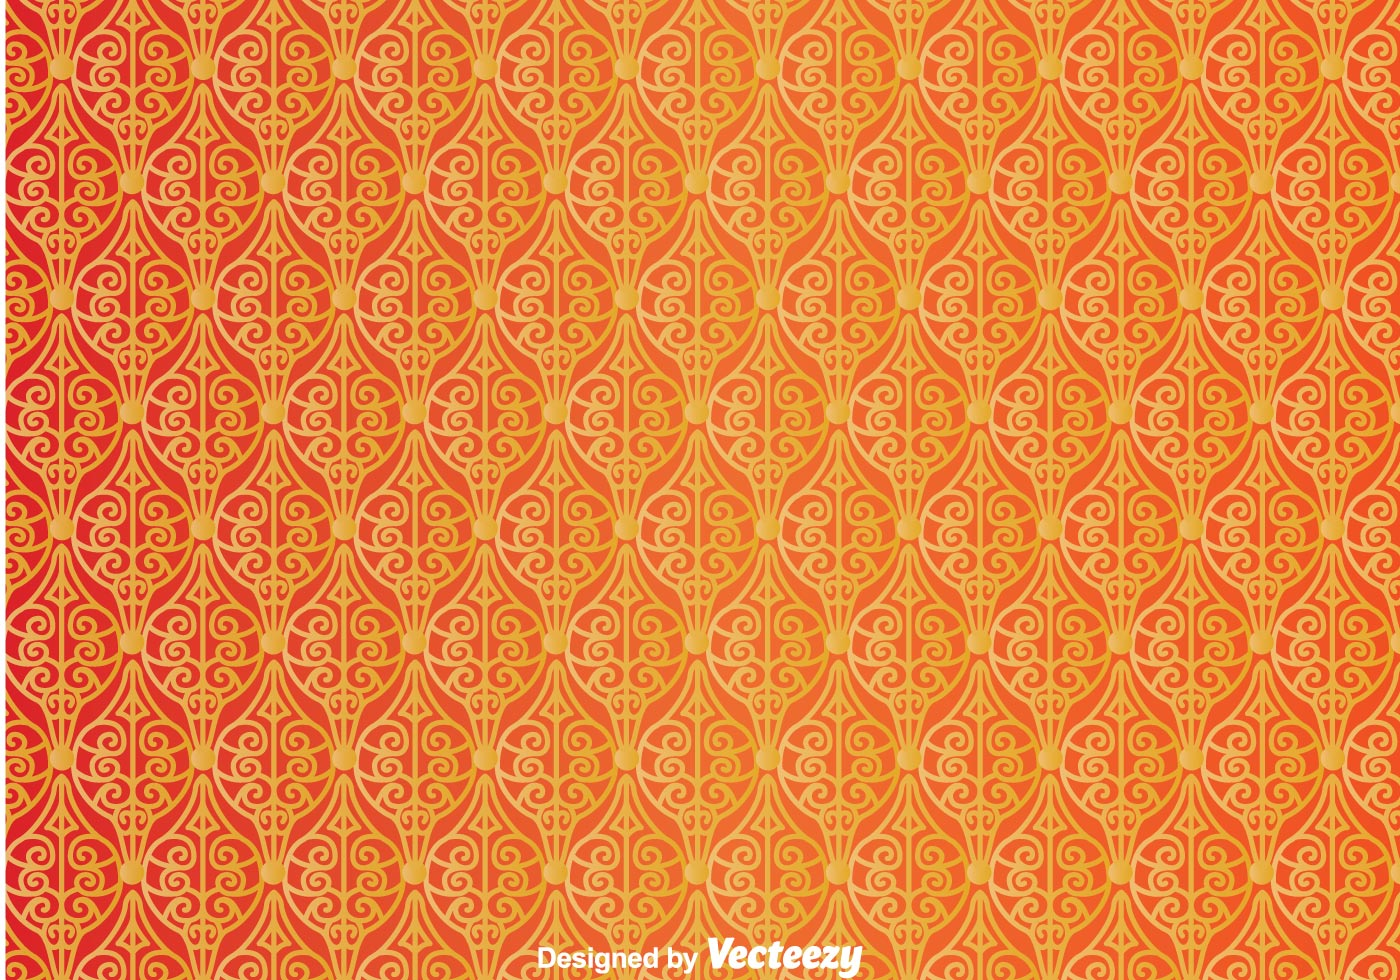 Wall Decorations Orange : Ornament orange wall tapestry download free vector art